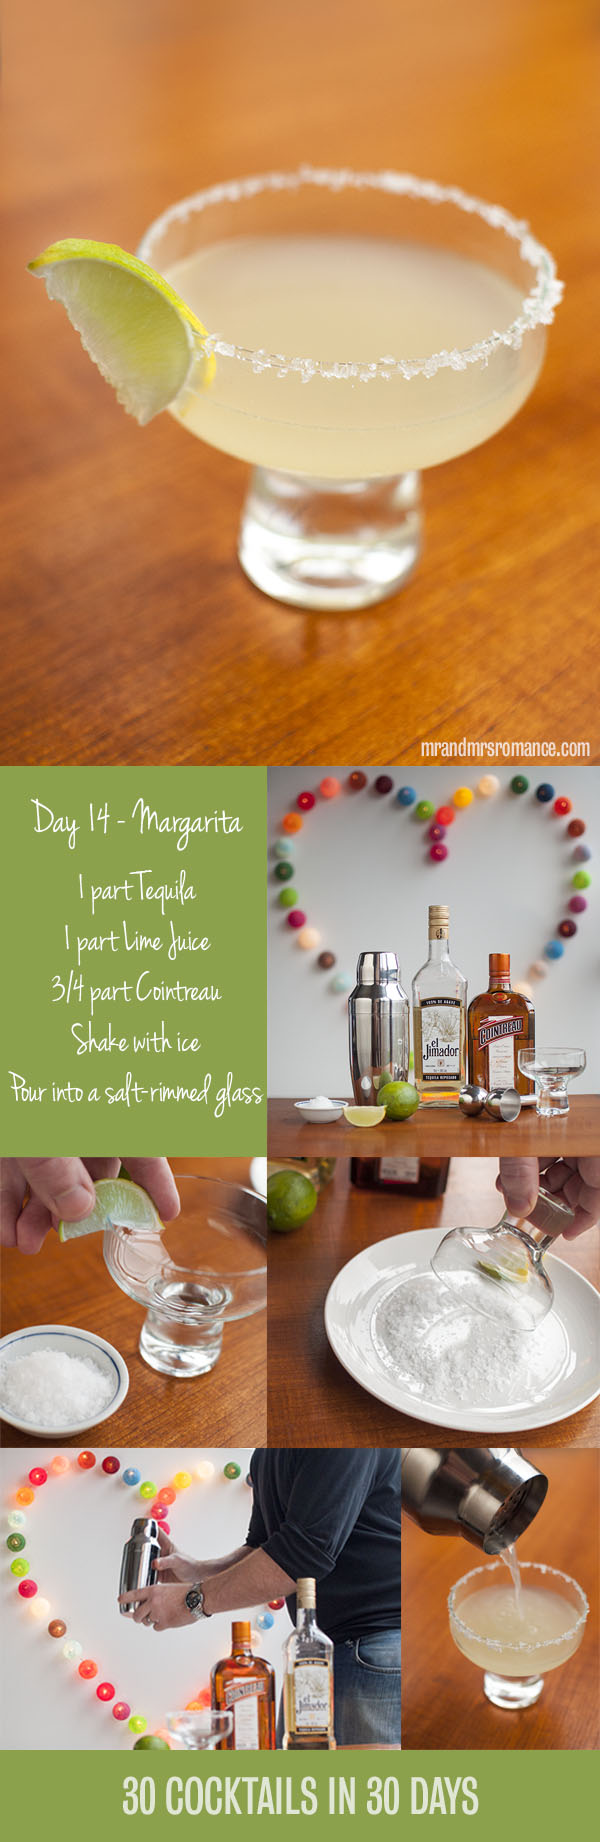 Mr and Mrs Romance - Day 14 - The Margarita cocktail recipe